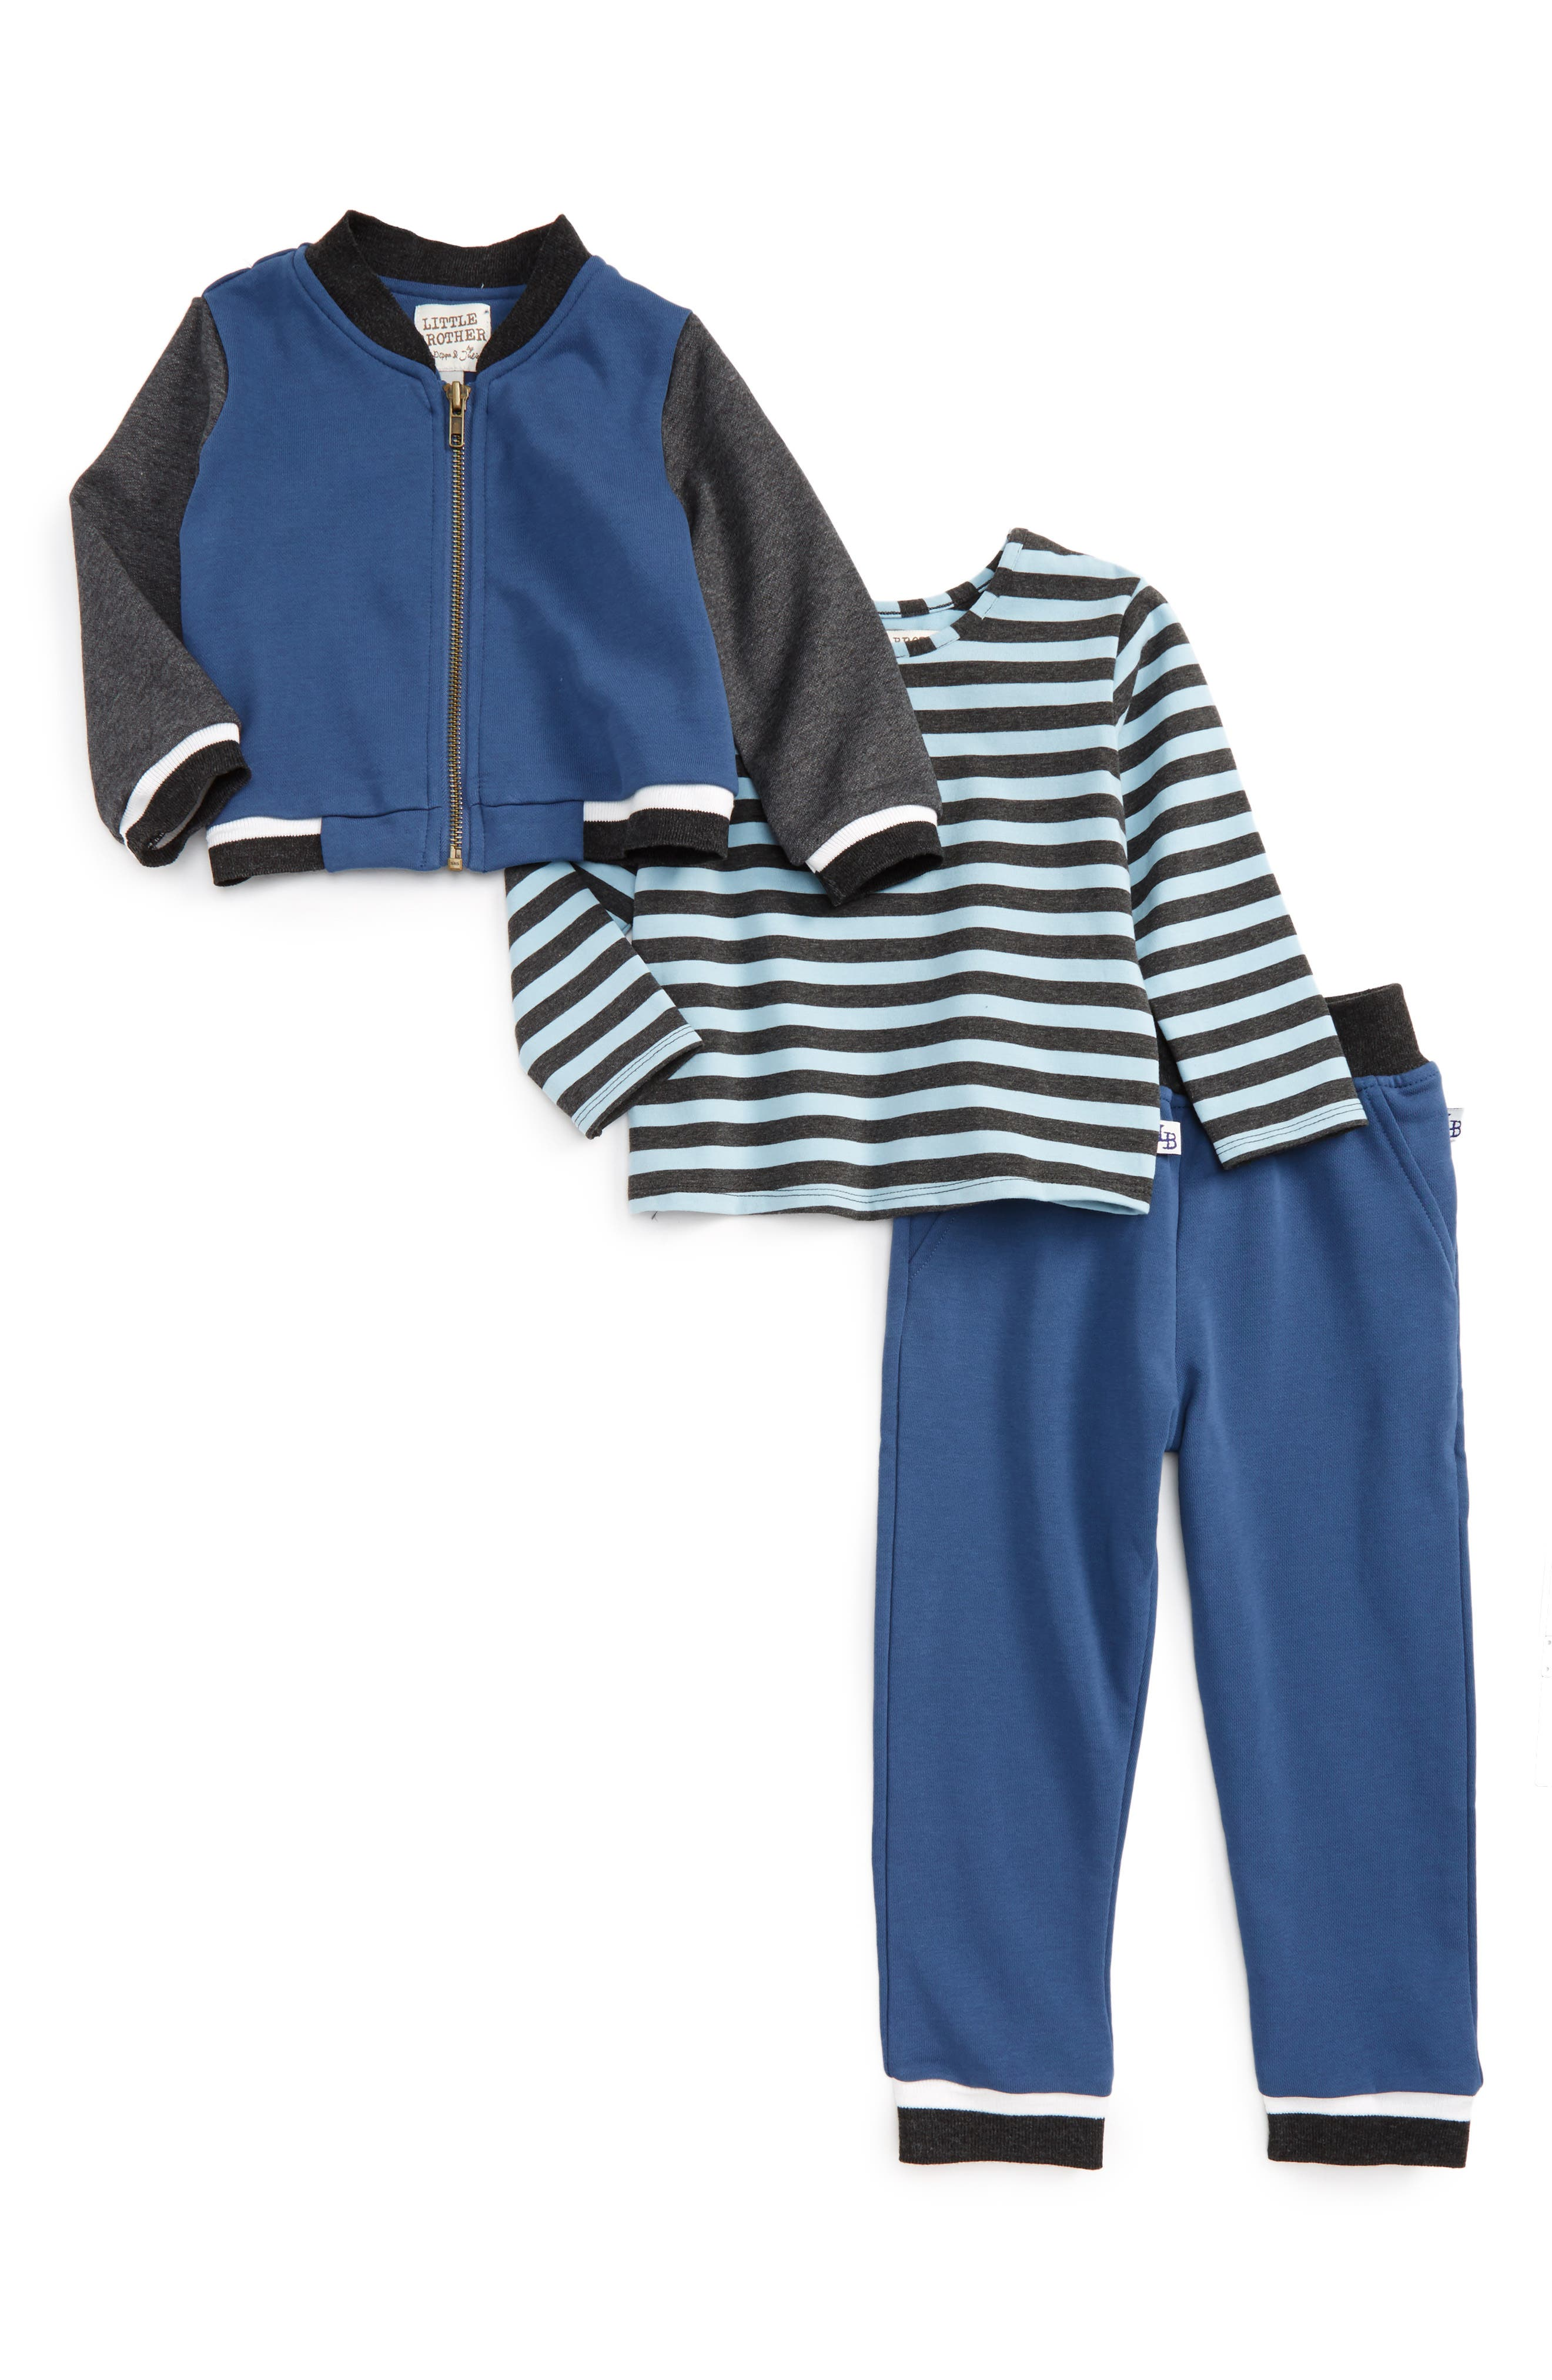 Alternate Image 1 Selected - Little Brother by Pippa & Julie Bomber Jacket, Top & Sweatpants Set (Toddler Boys)